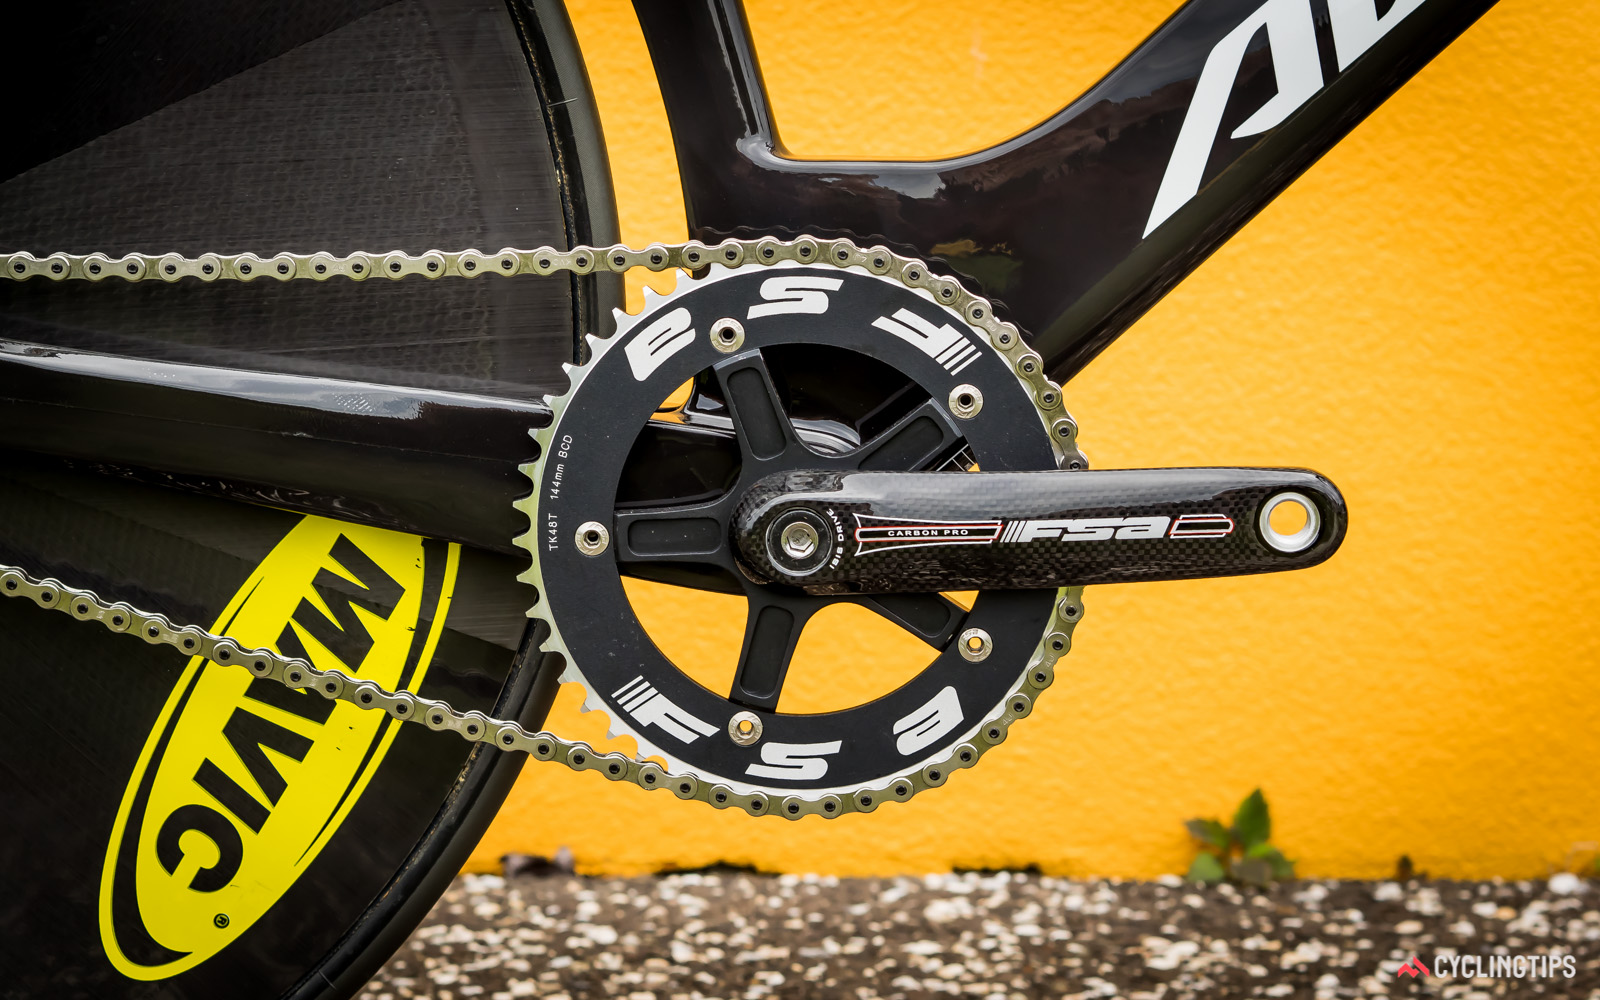 There's no word on what kind of cranks the New Zealand pursuit riders will be using at Rio.